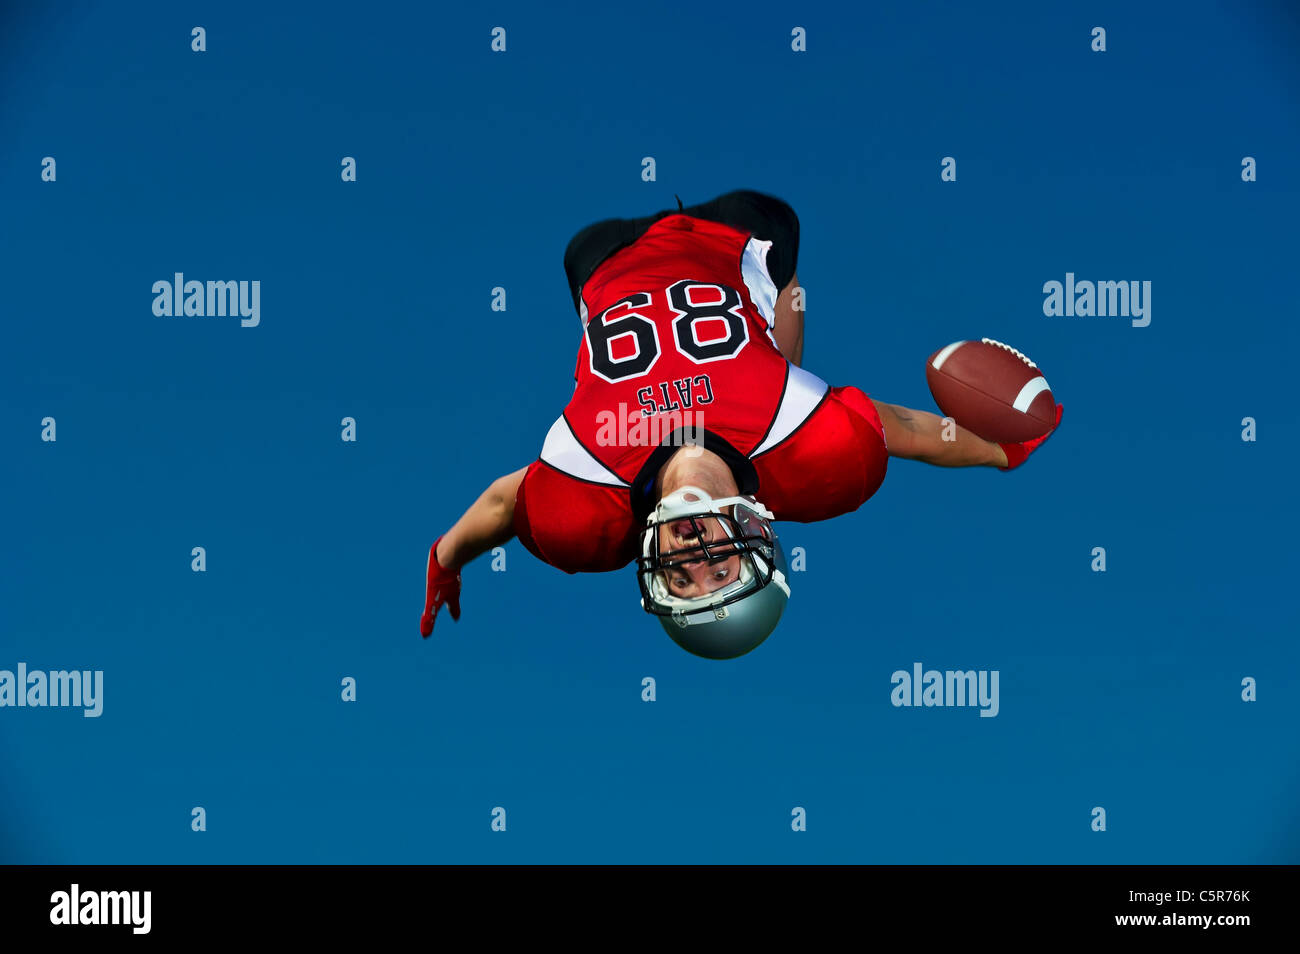 American Footballer celebrates touchdown and back flips with the ball. - Stock Image